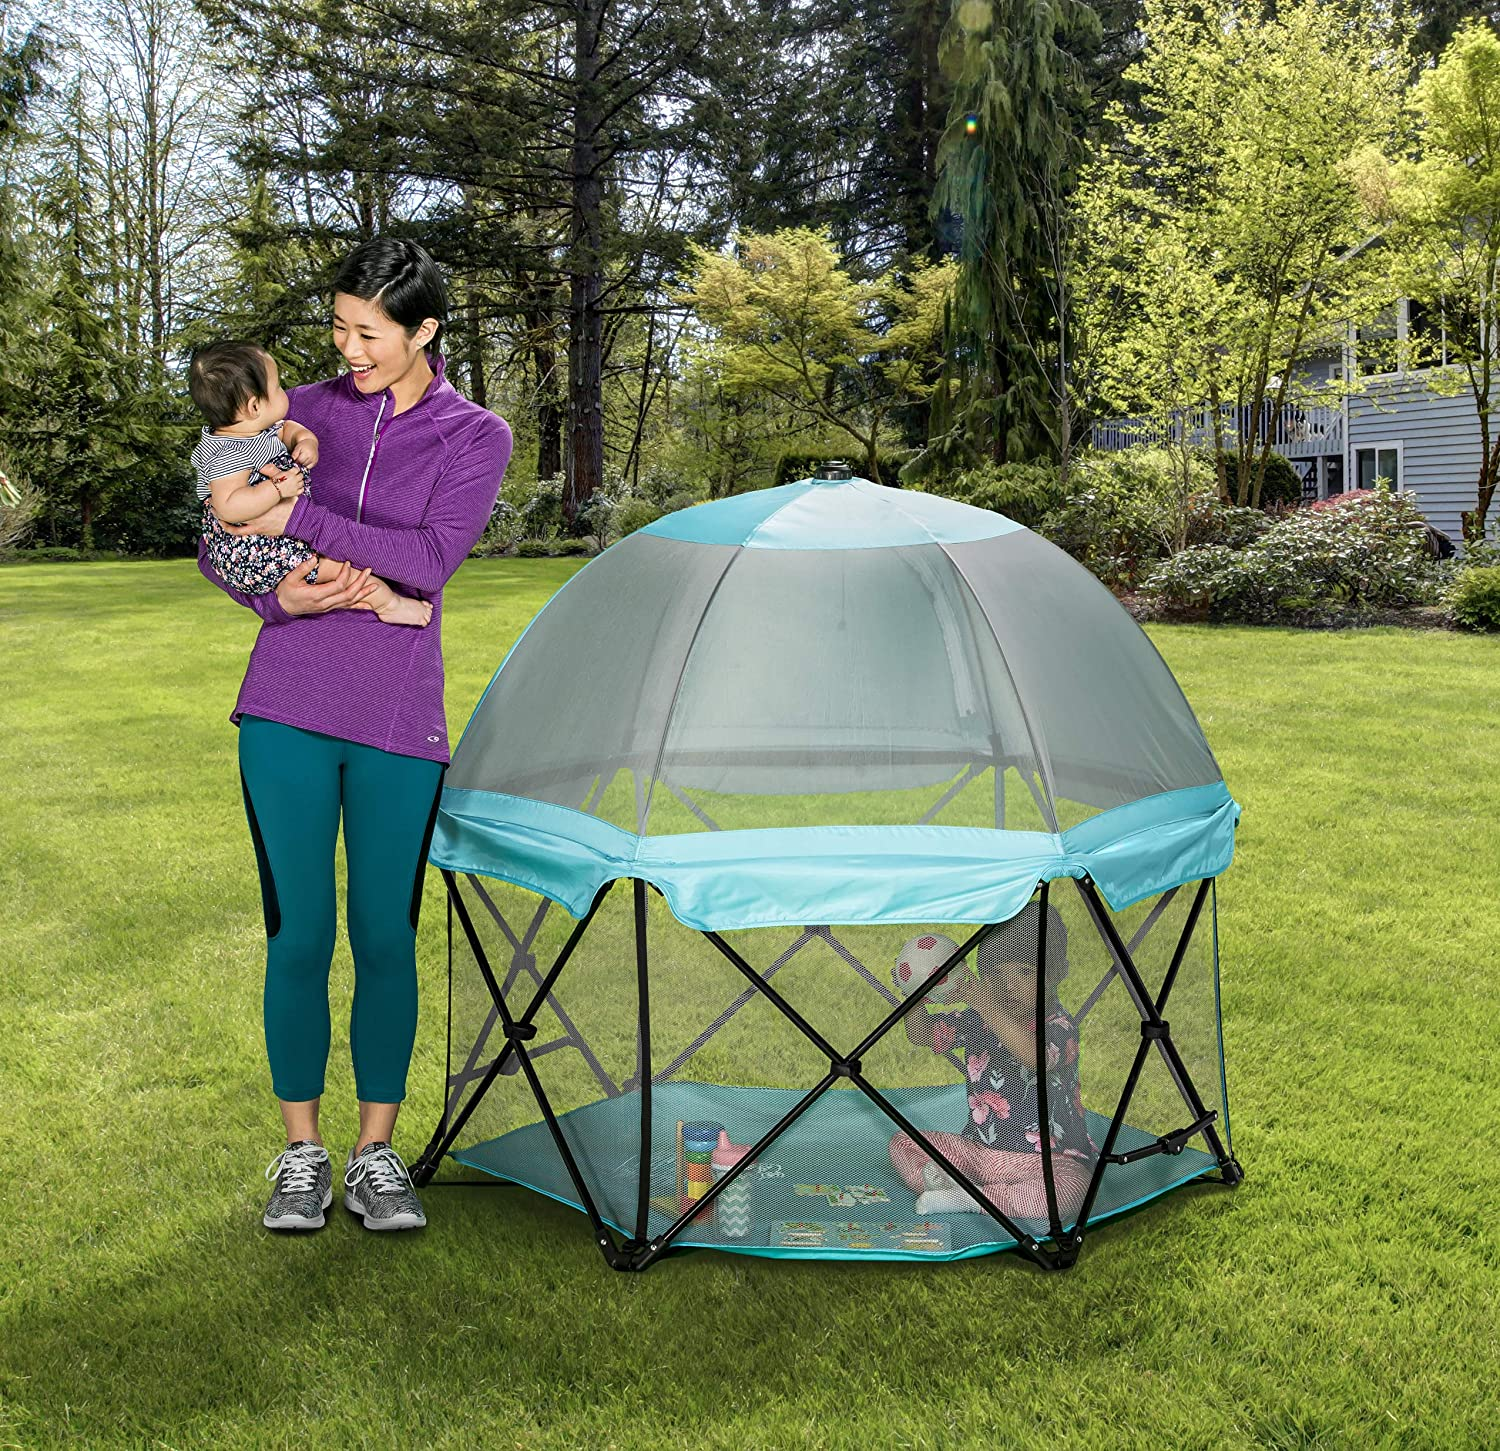 Regalo My Play Portable Play Yard Indoor and Outdoor with Full Coverage Canopy and Carry Case, Adjustable Washable, Aqua, 6-Panel